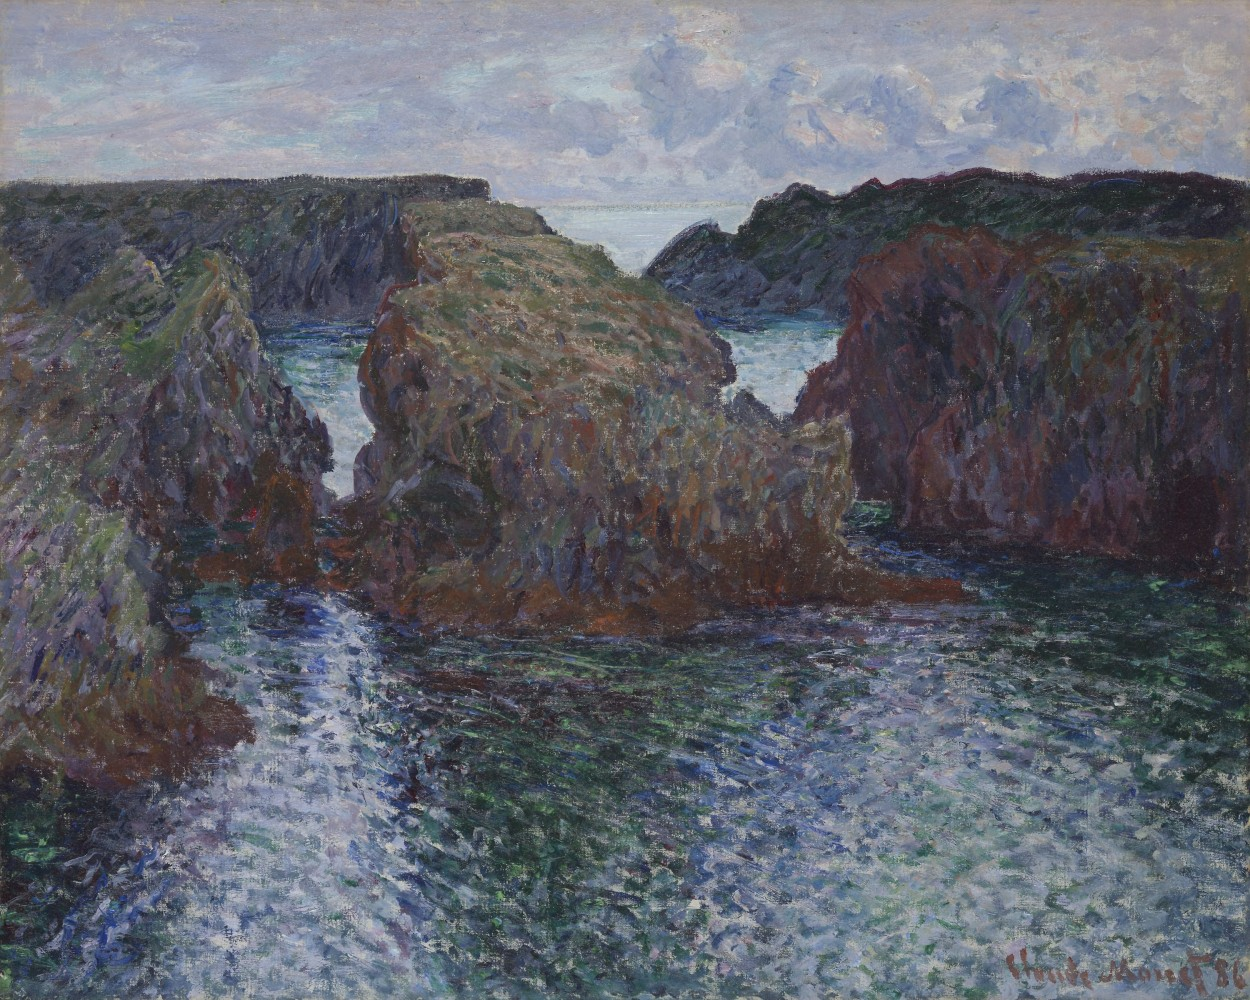 Rocks at Port-Goulphar, Belle-Île by Claude Monet via DailyArt app, your daily dose of art getdailyart.com